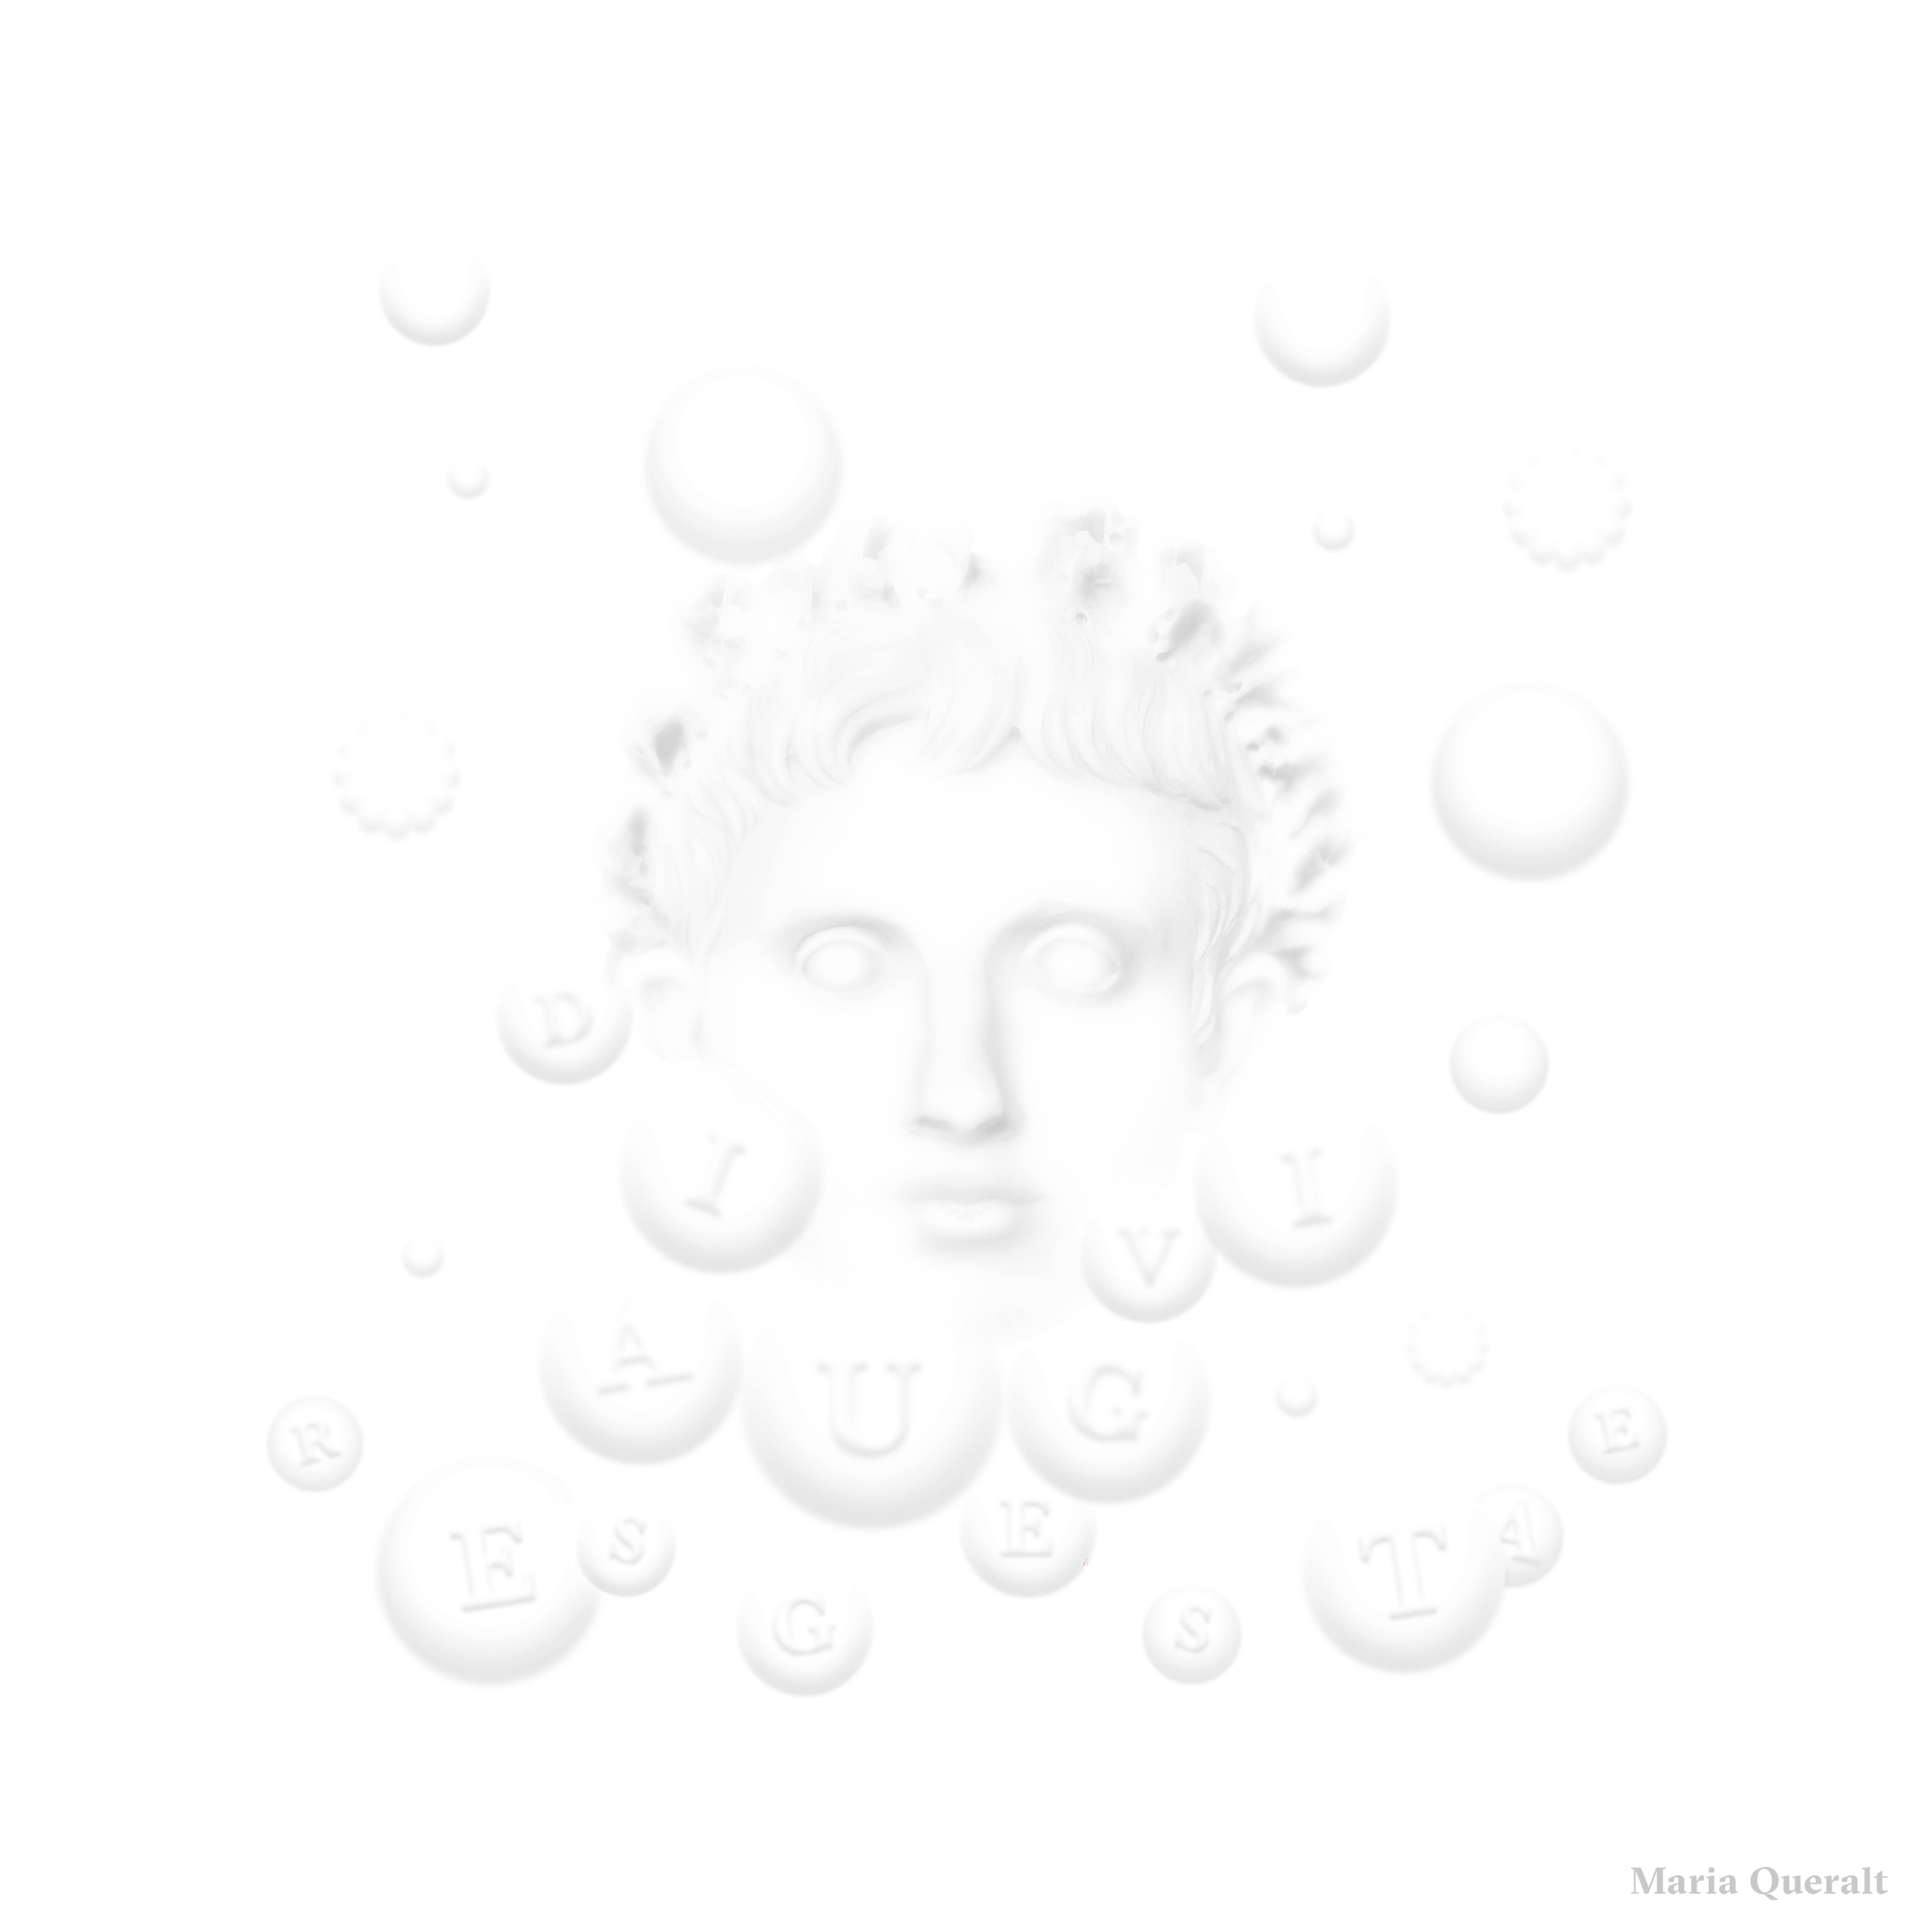 Digital art work of Roman Emperor Augustus in black and white with white bubbles around him, based on the portrait sculpture in marble of roman emperor Augustus at the Louvre Museum in Paris and inspired by the Res Gestae. Photography, concept, design and retouch by Maria Queralt